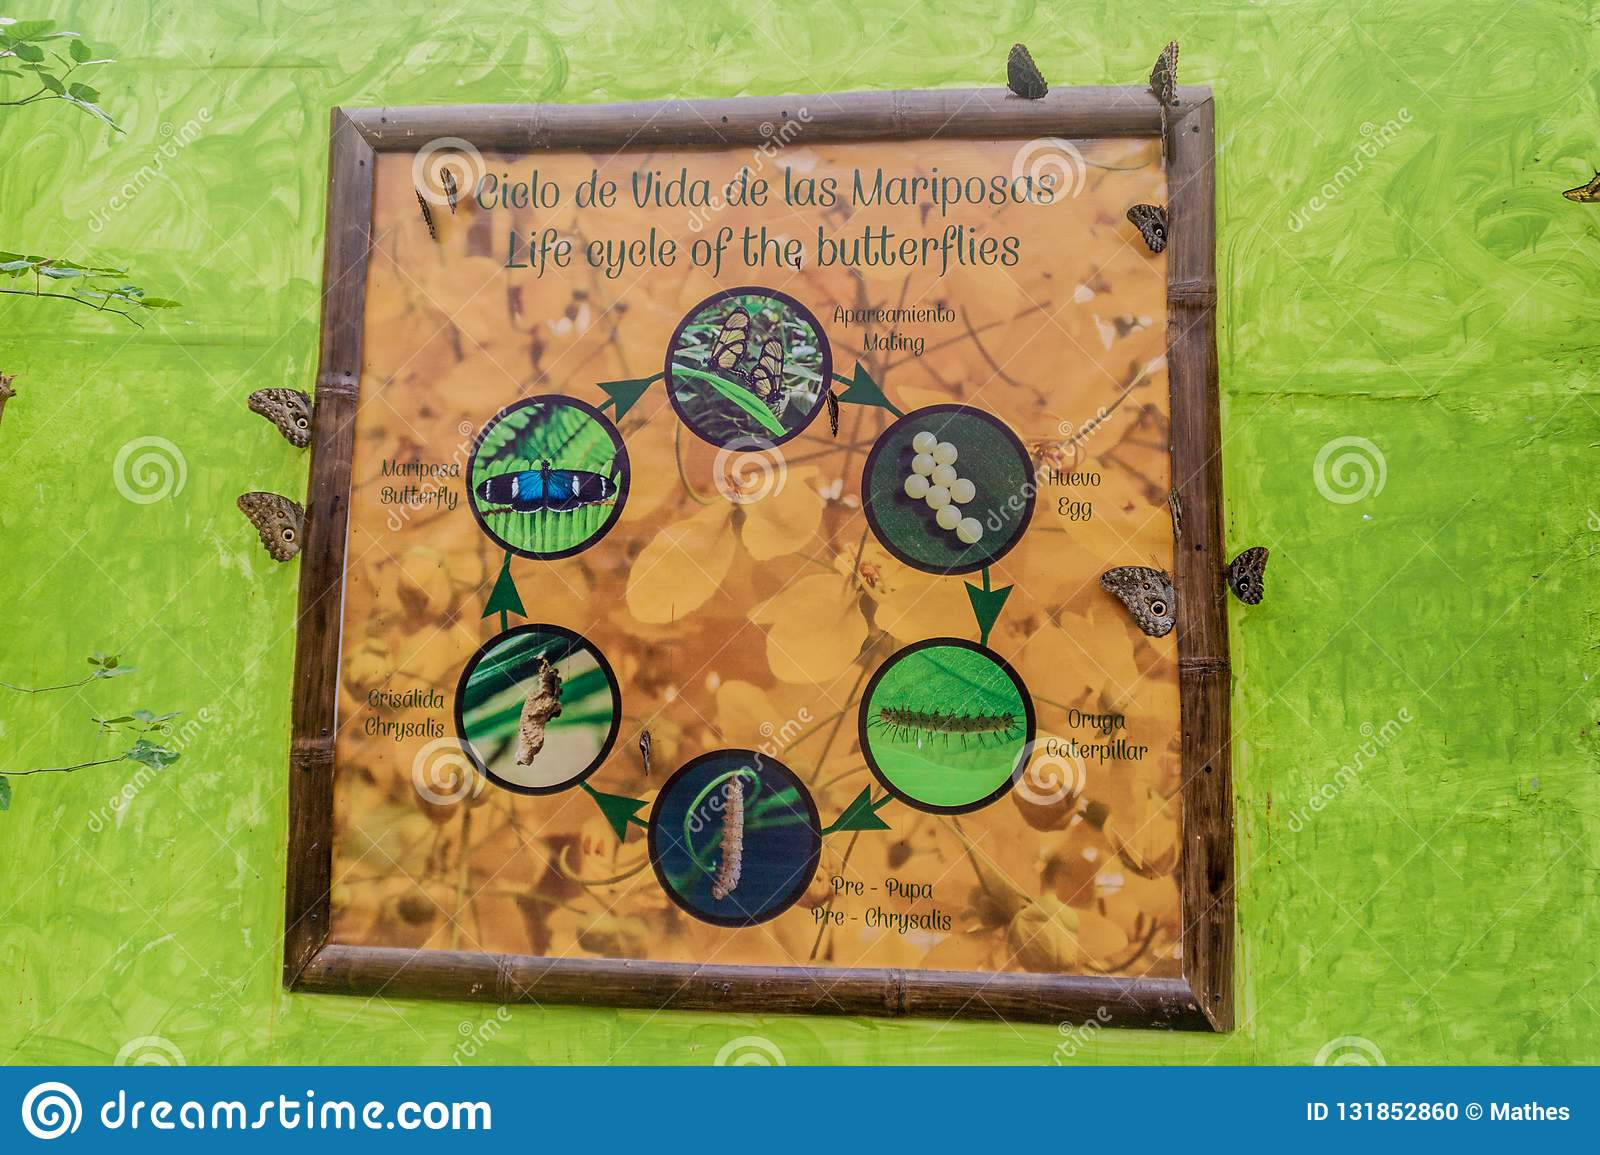 MINDO, ECUADOR - JUNE 27, 2015: Butterfy life cycle poster in Mariposario The Butterfly House in Mindo, Ecuad